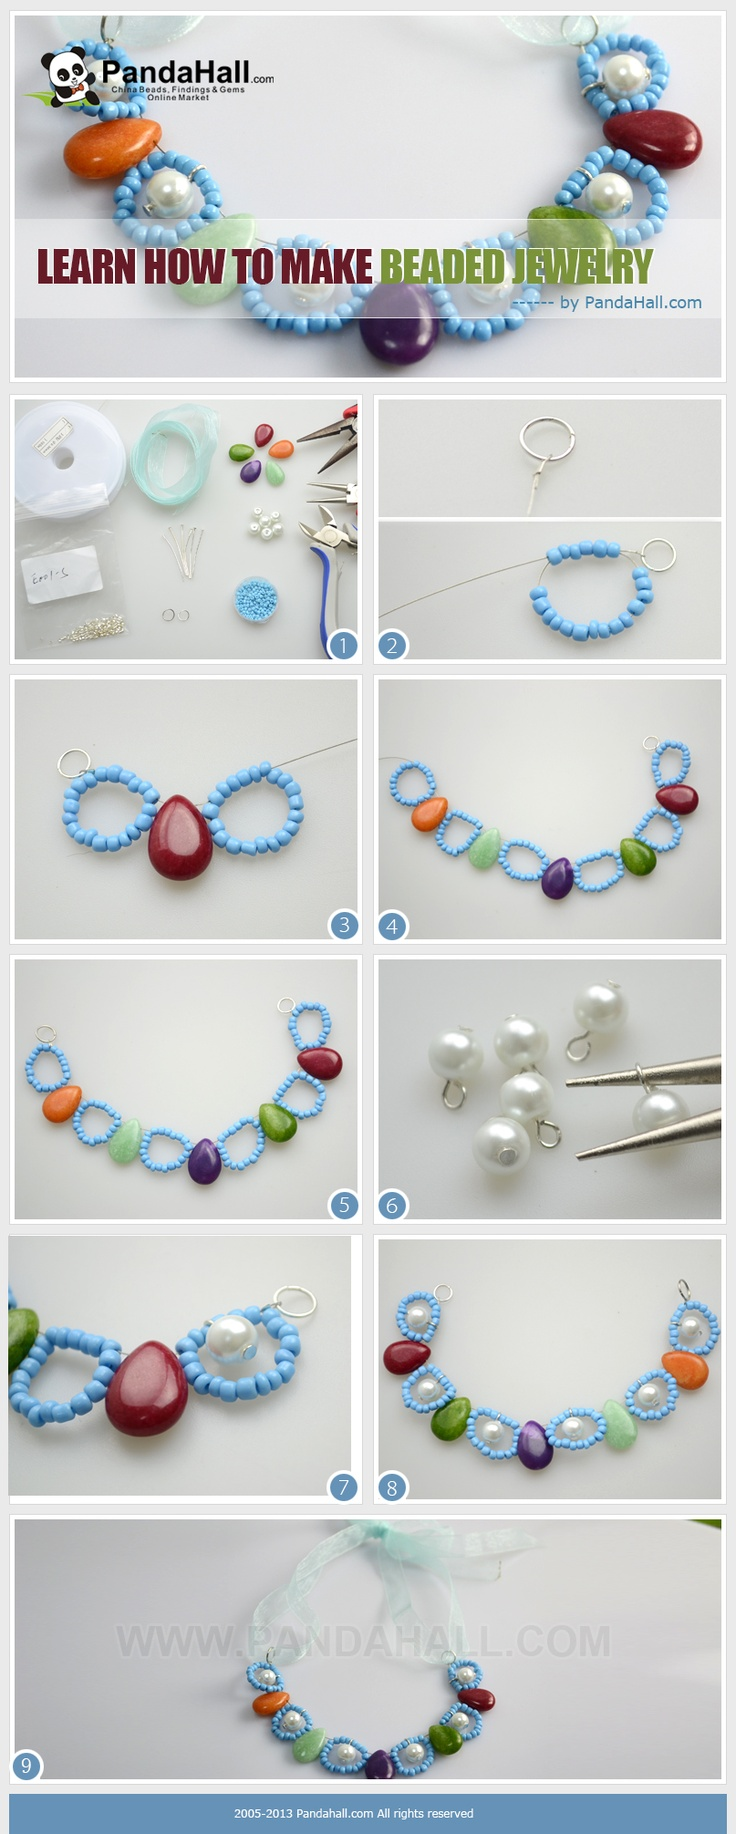 To learn how to make beaded jewelry is the lifelong pursuit of most craft fancier, especially for the beloved ones, the passion and desire even increase much as the time changing. Hence, today, I will show you a tutorial on how to make beaded jewelry for kids.